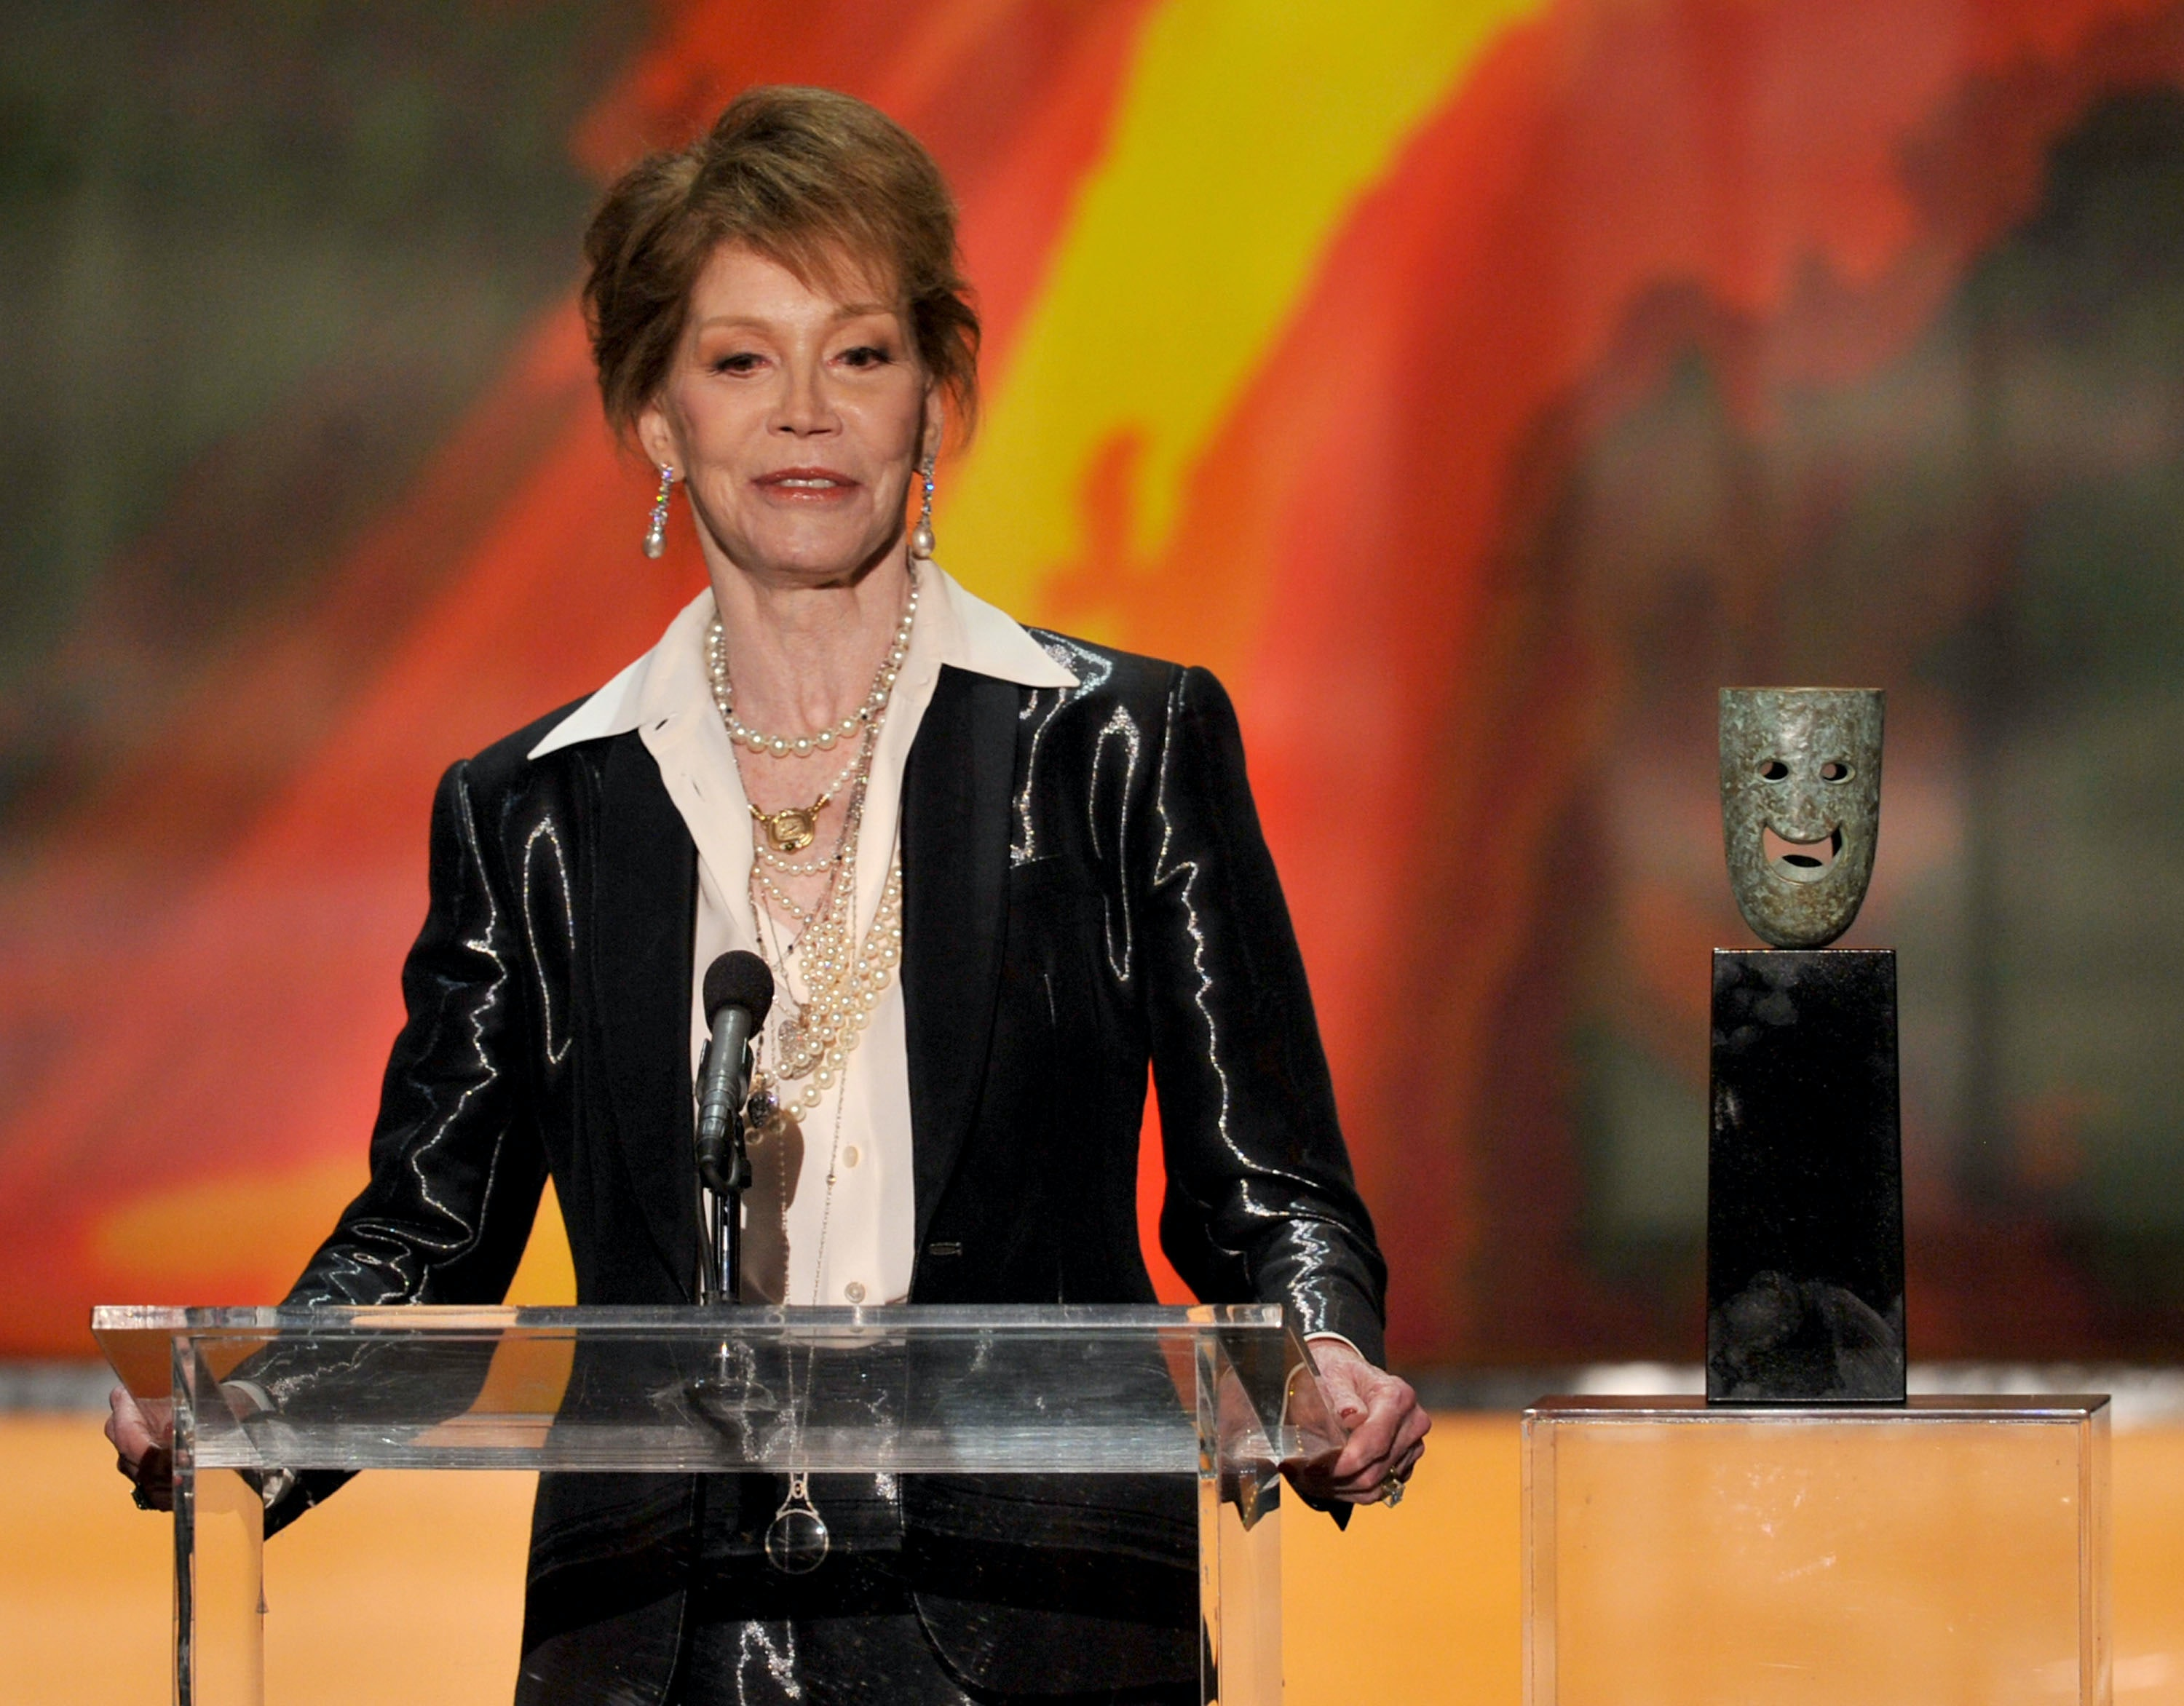 mary tyler moore u0026 39 s net worth reflects her long